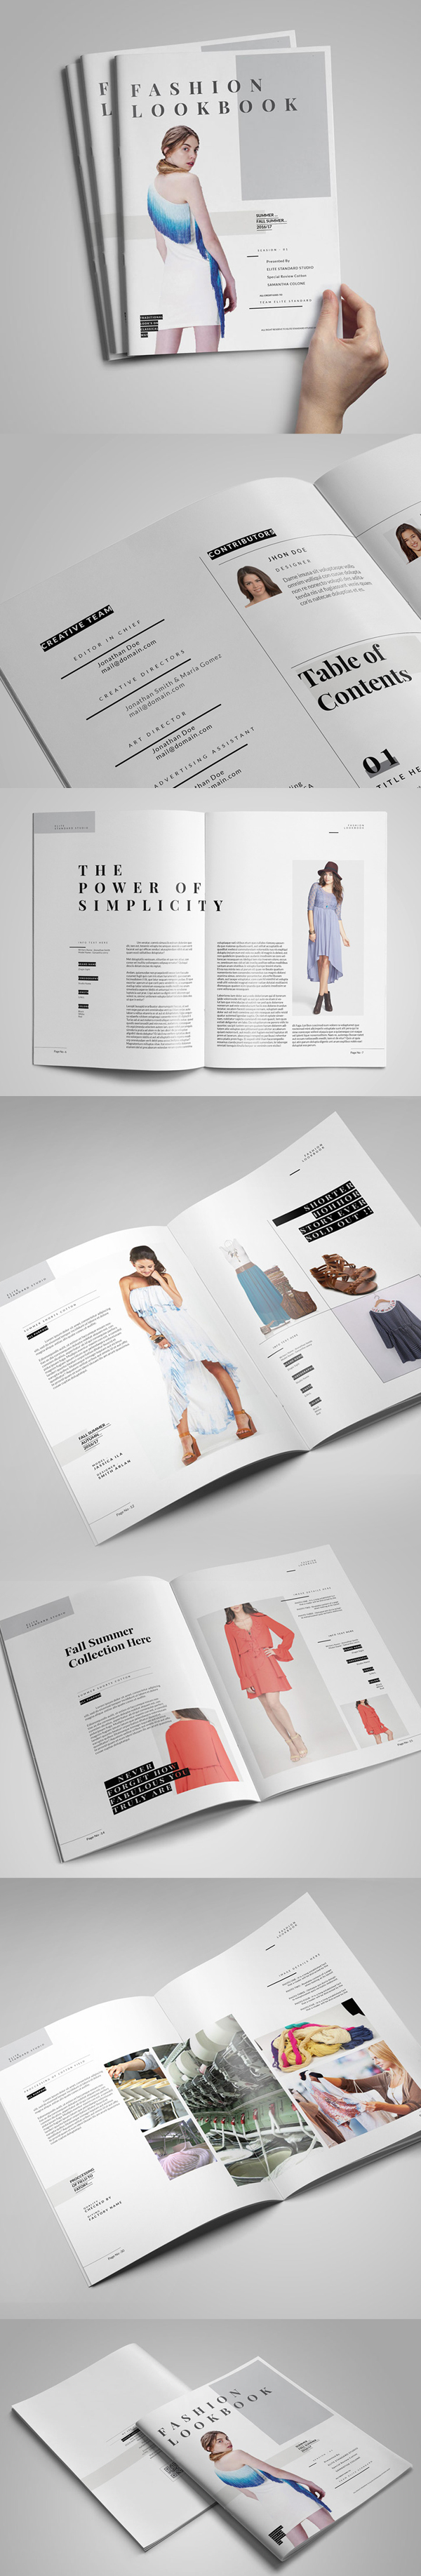 Minimal Fashion Look book / Catalog Template